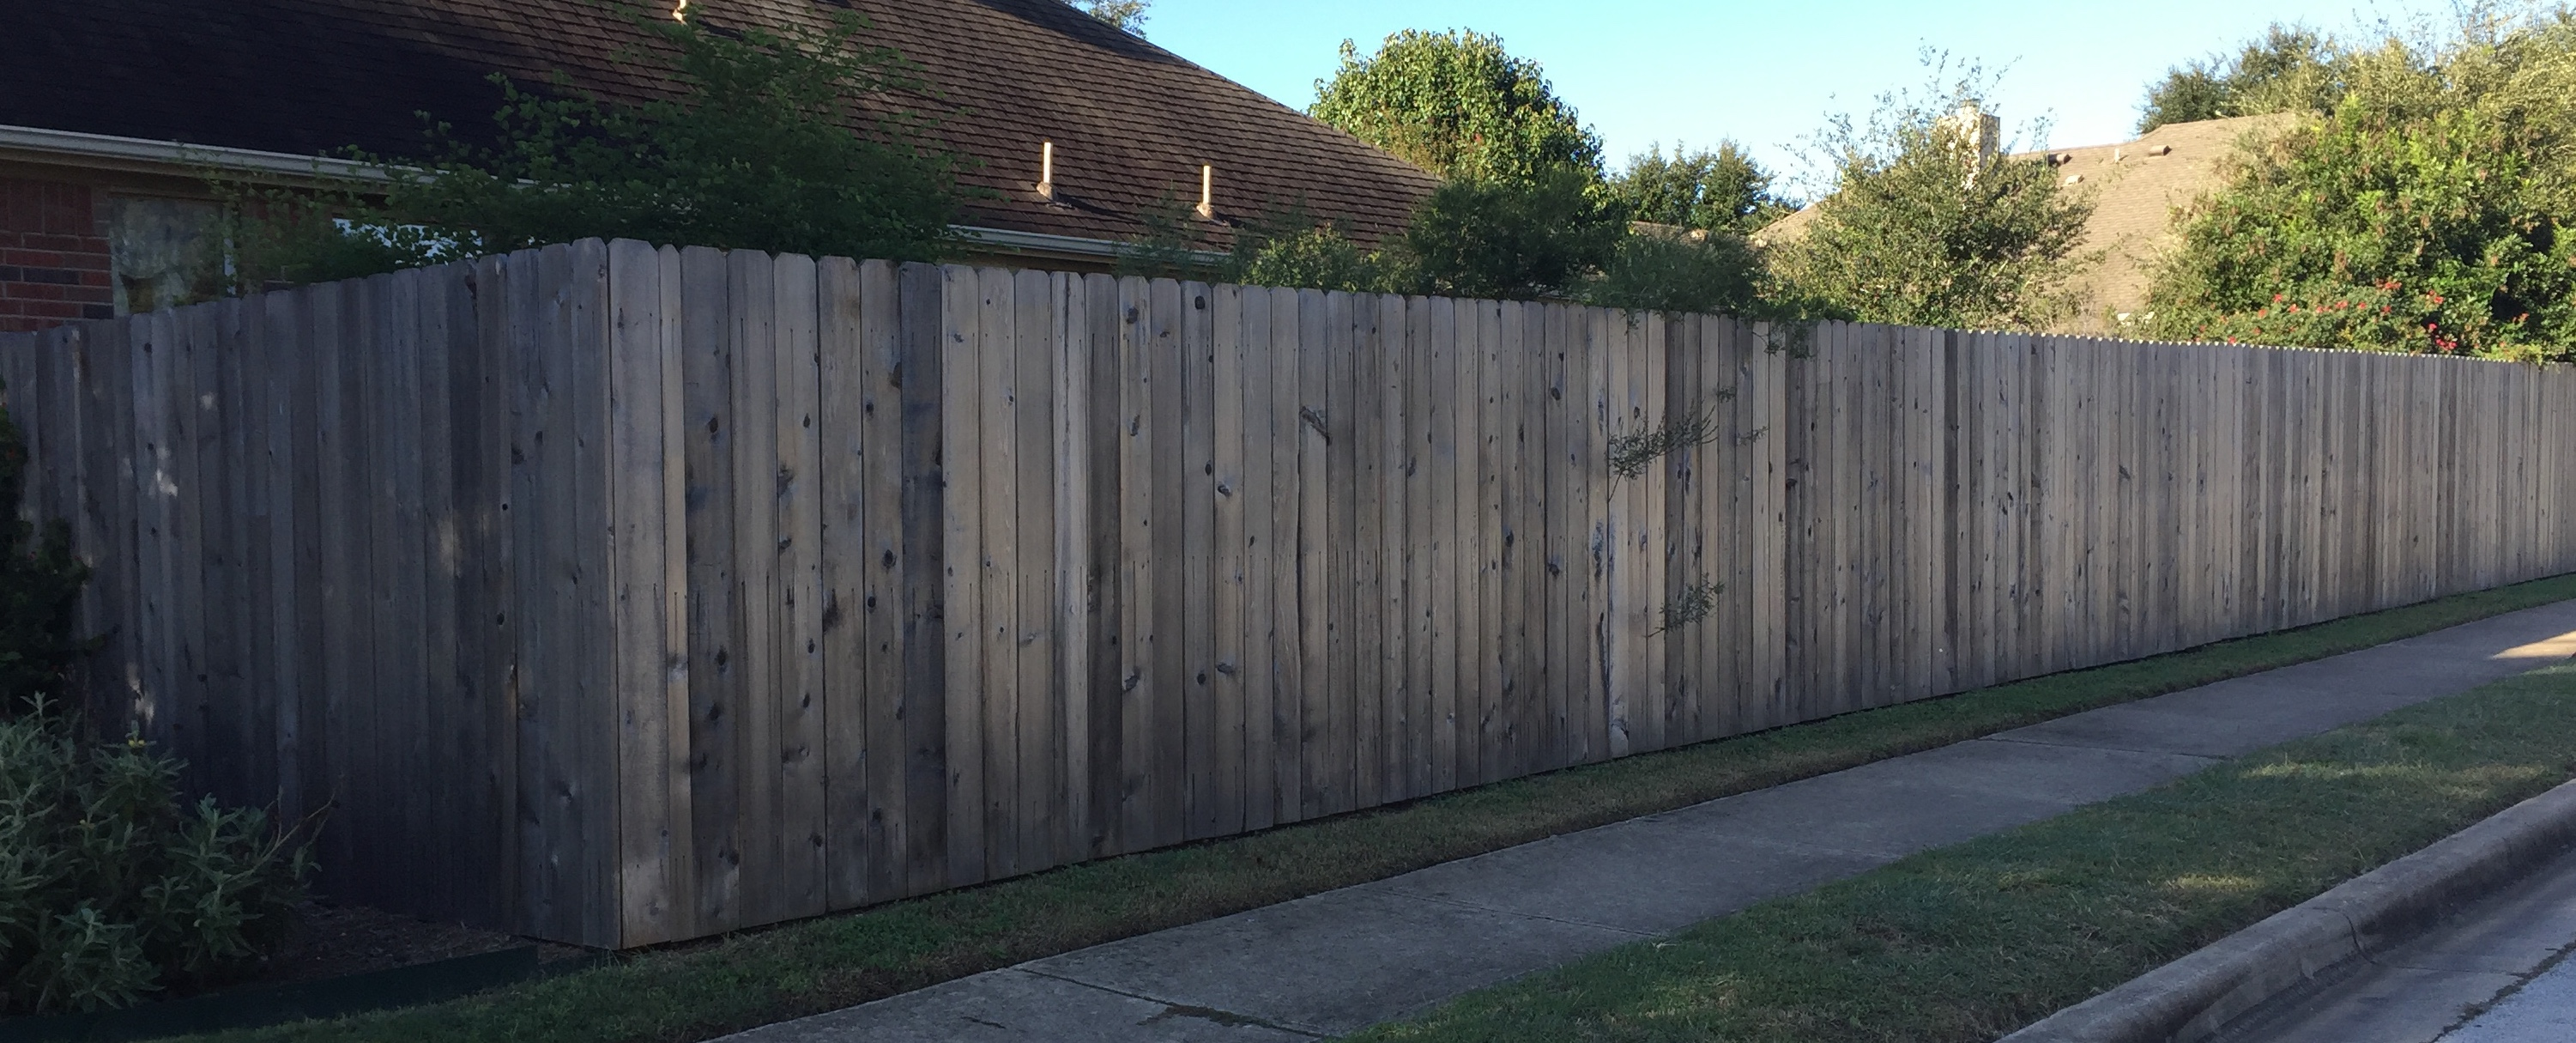 Austin brothers fence company quality fence installation private wood fence with vertical pickets and grey stain by austin brothers fence co baanklon Image collections